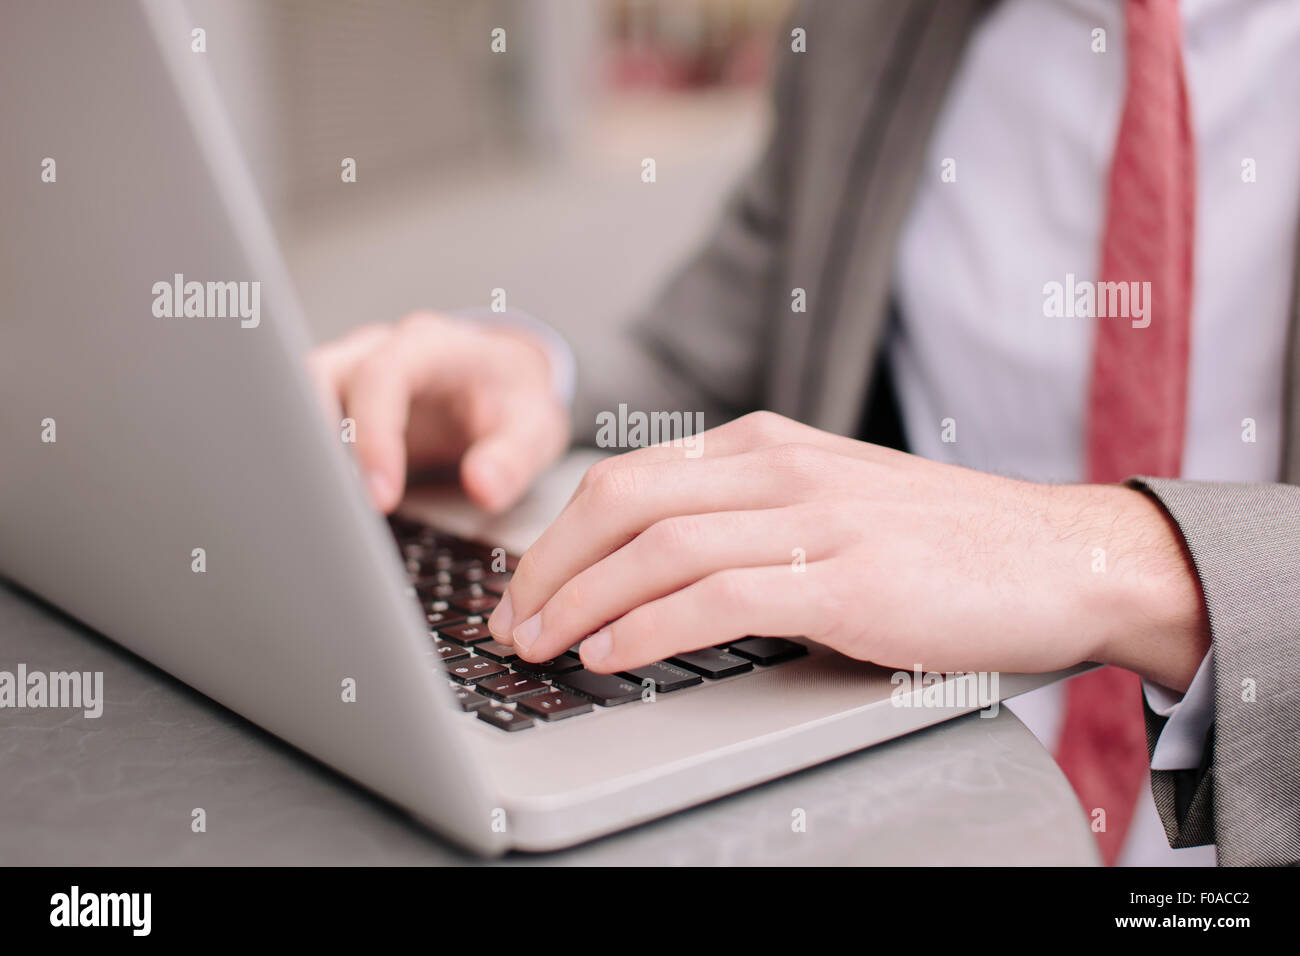 Hands of young city businessman typing on laptop at sidewalk cafe - Stock Image